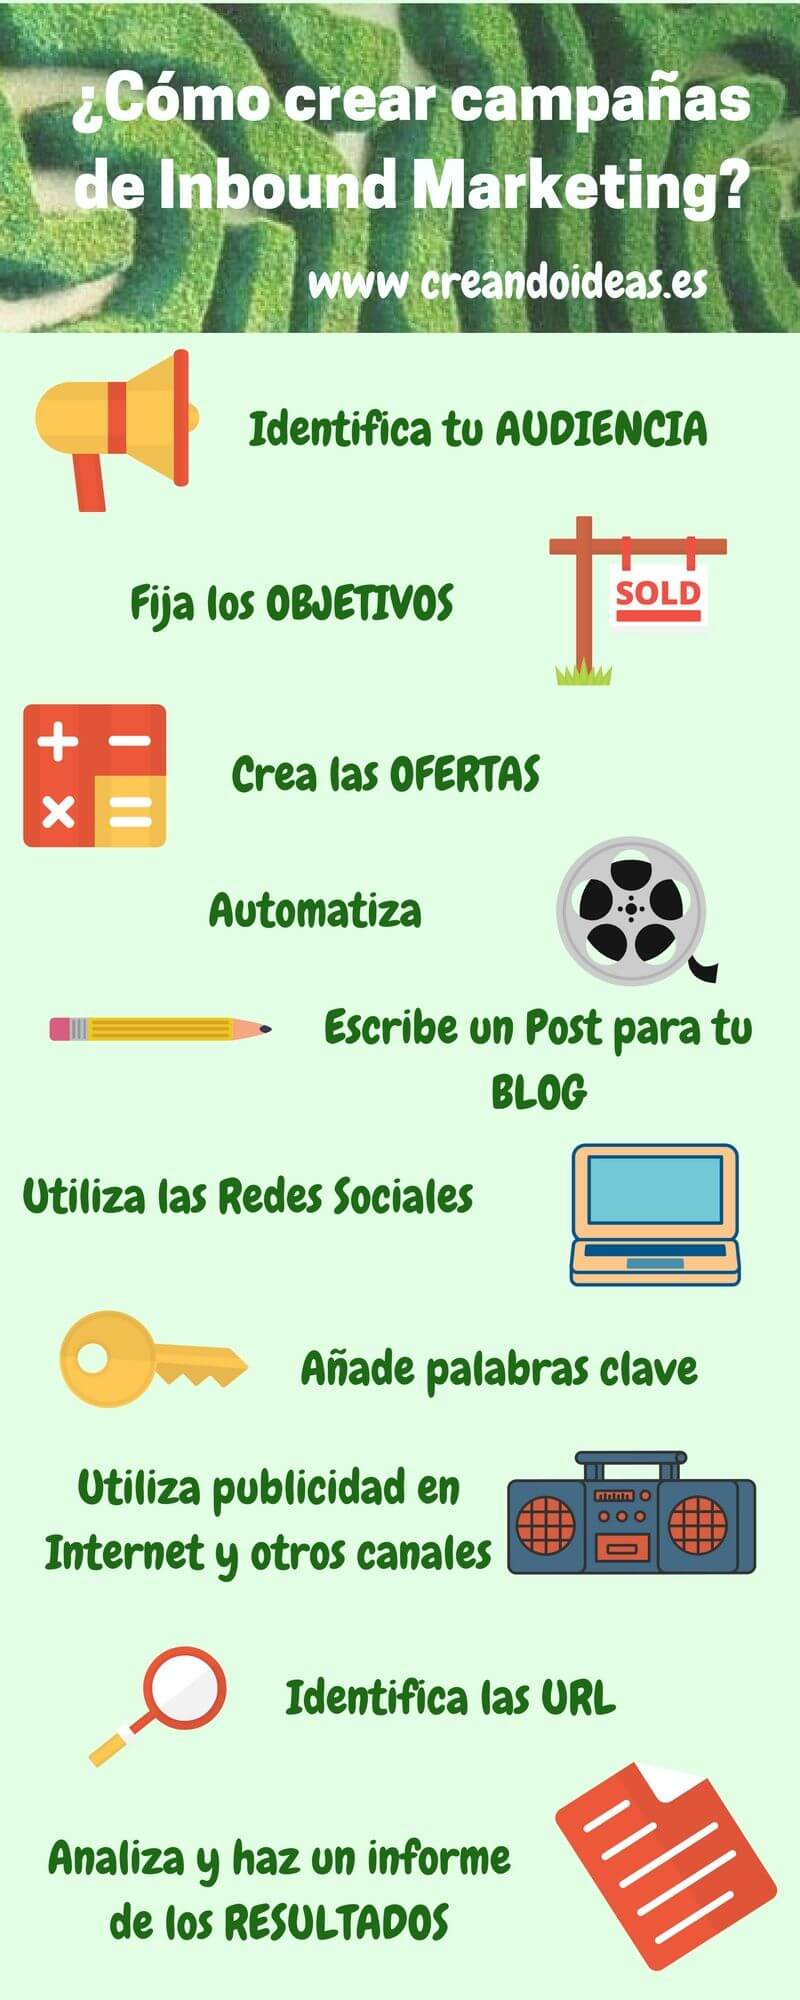 Cómo crear campañas de Inbound Marketing